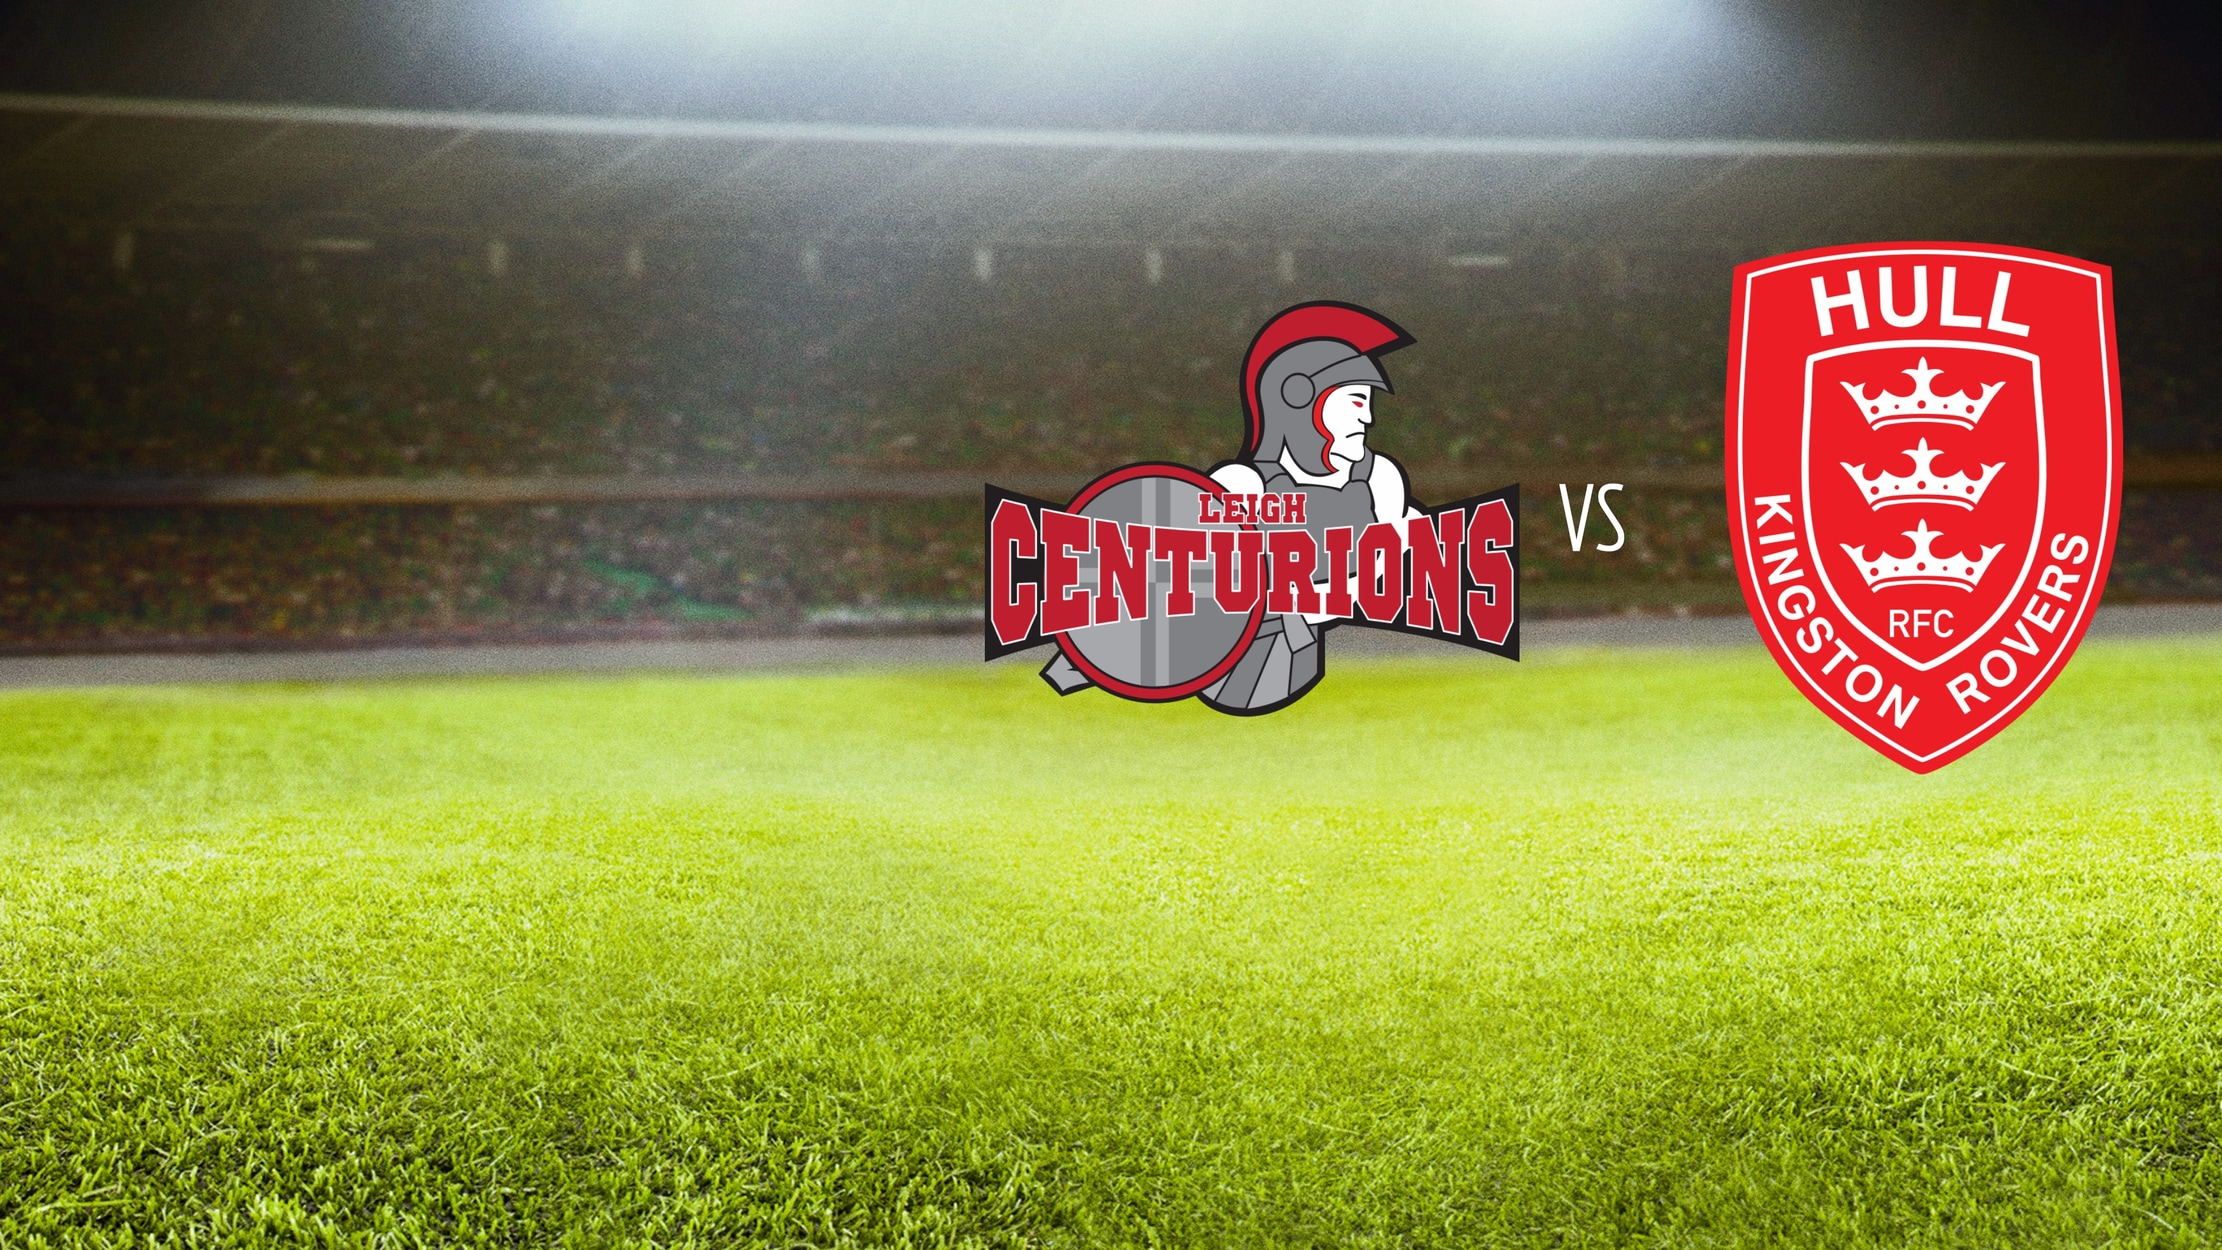 Rugby Super League - Leigh Centurions vs. Hull Kingston Rovers seriesDetail